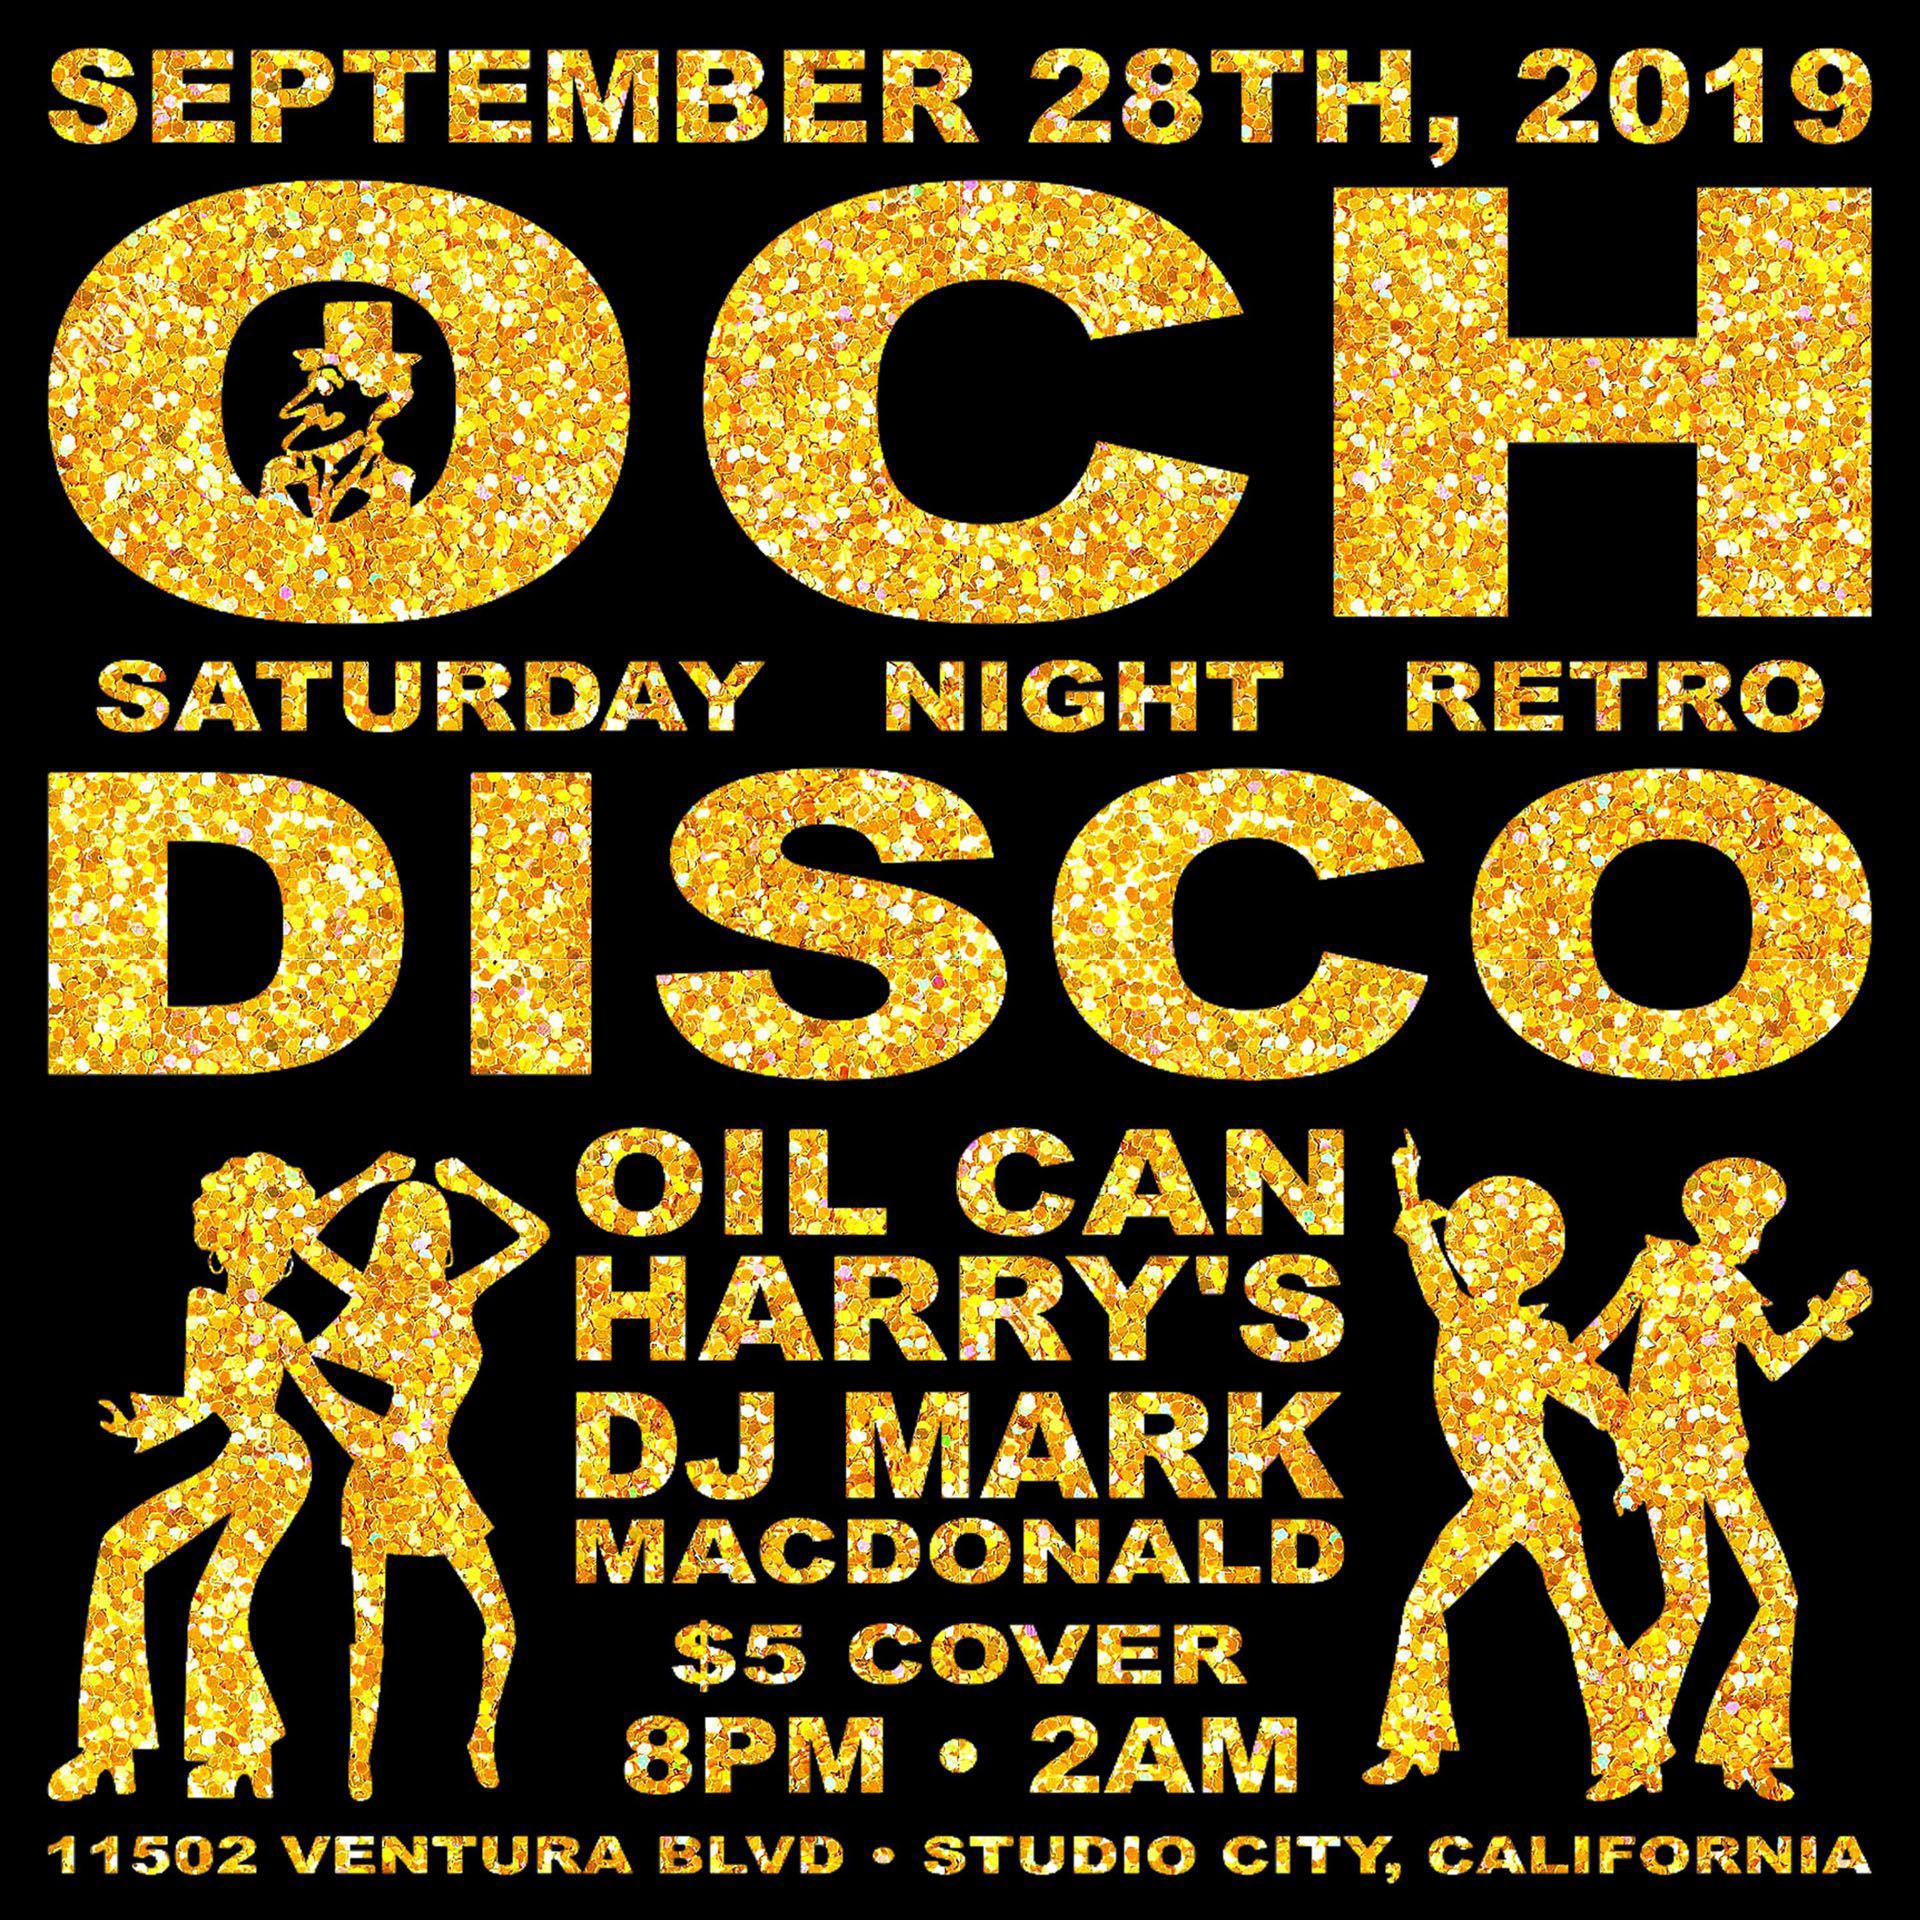 Oil Can Harry's Hosts DJ MARK MACDONALD from Las Vegas for RETRO DISCO: Saturday, September 28, 2019! 8:00 PM to 2:00 AM! $5.00 Cover.